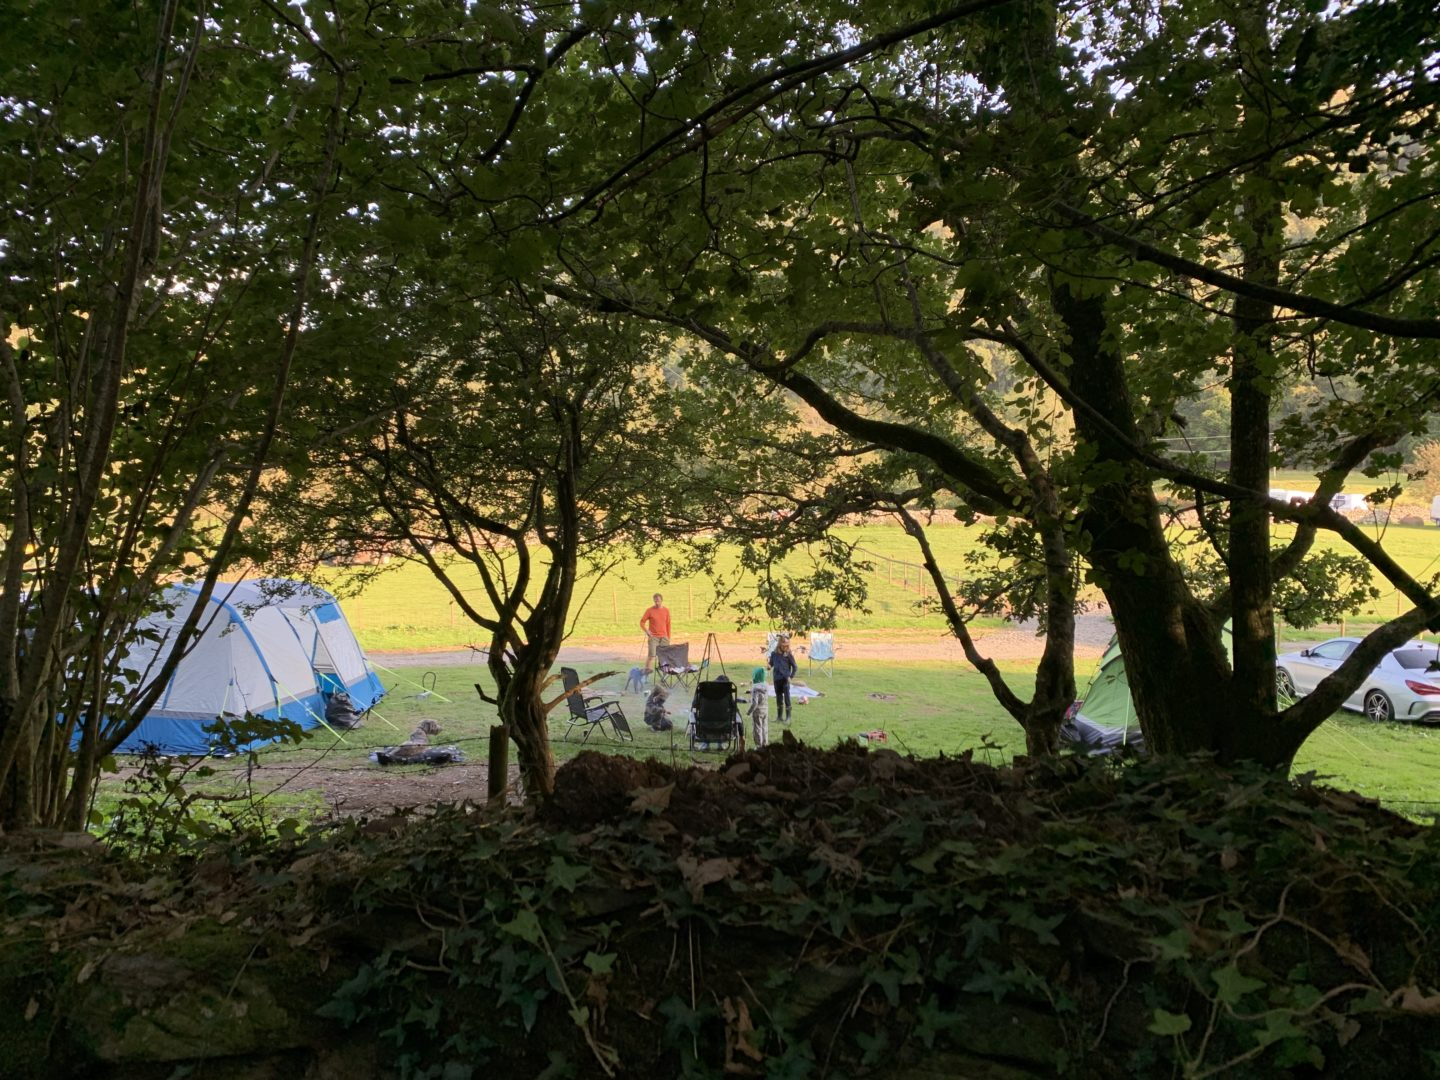 Camping as a family in the Snowdonia National park